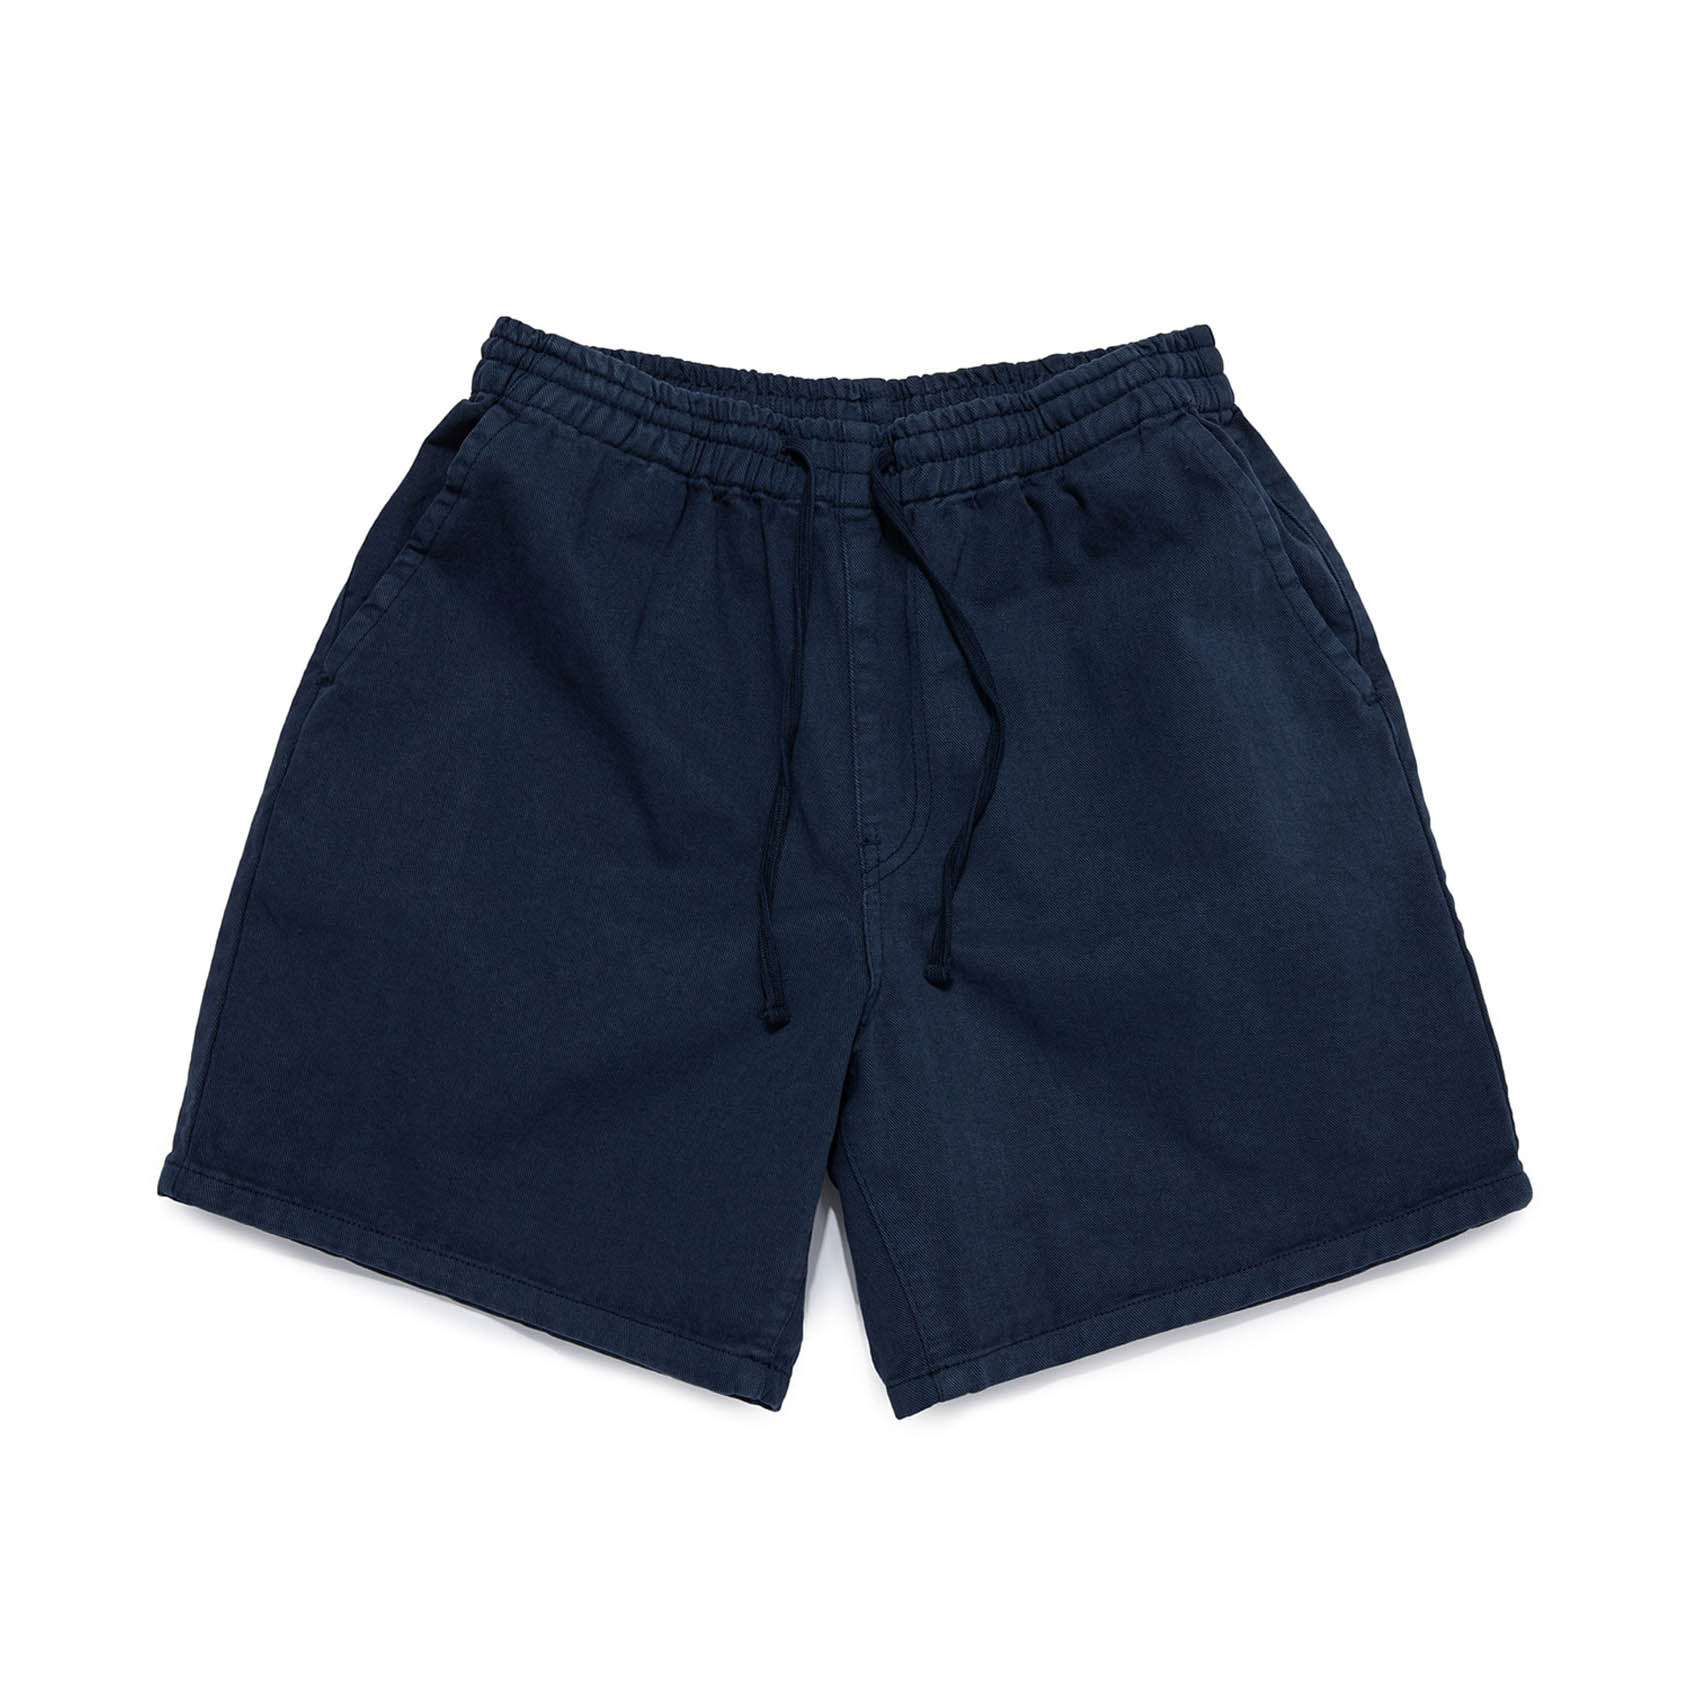 SULFUR DYE EASY SHORTS - WASHED NAVY